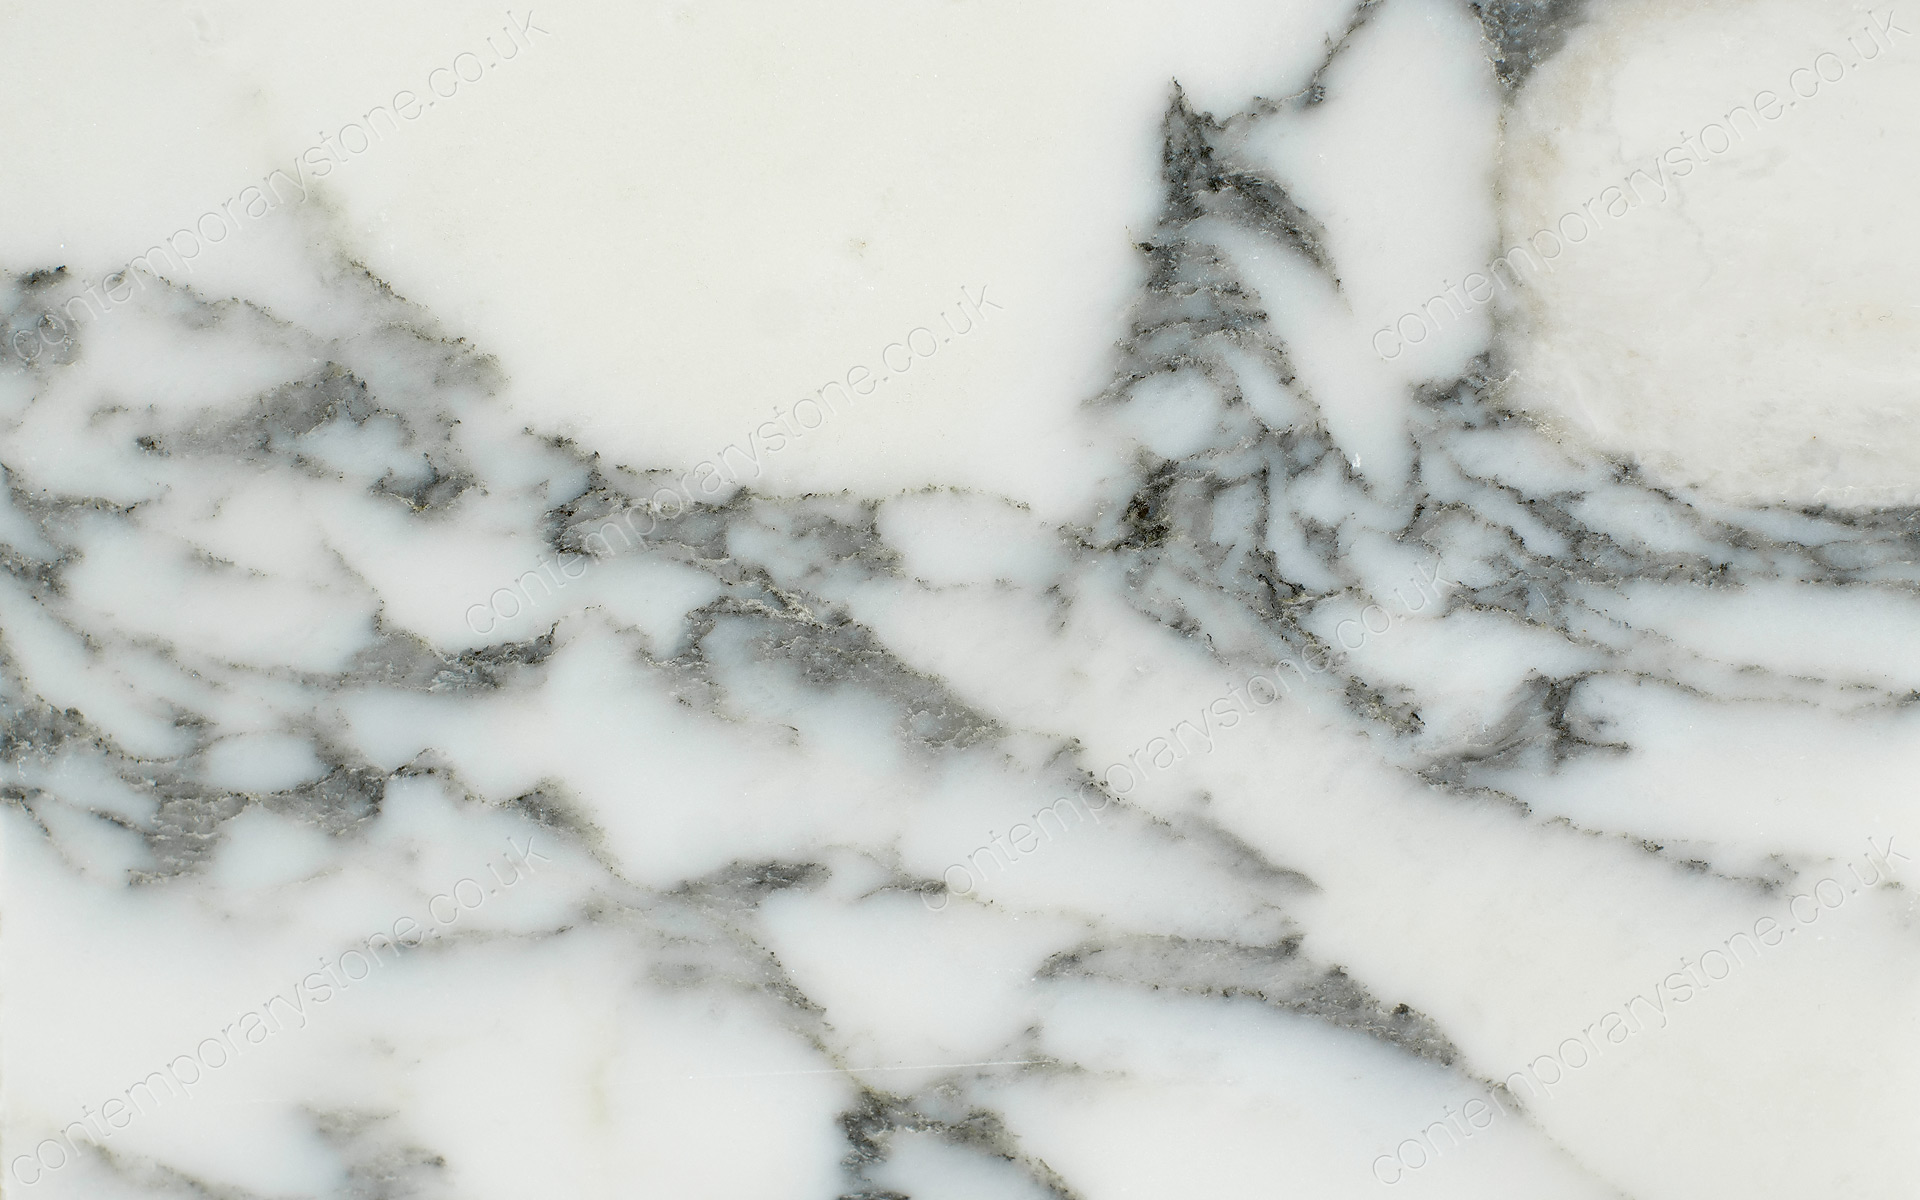 arabescato marble close-up